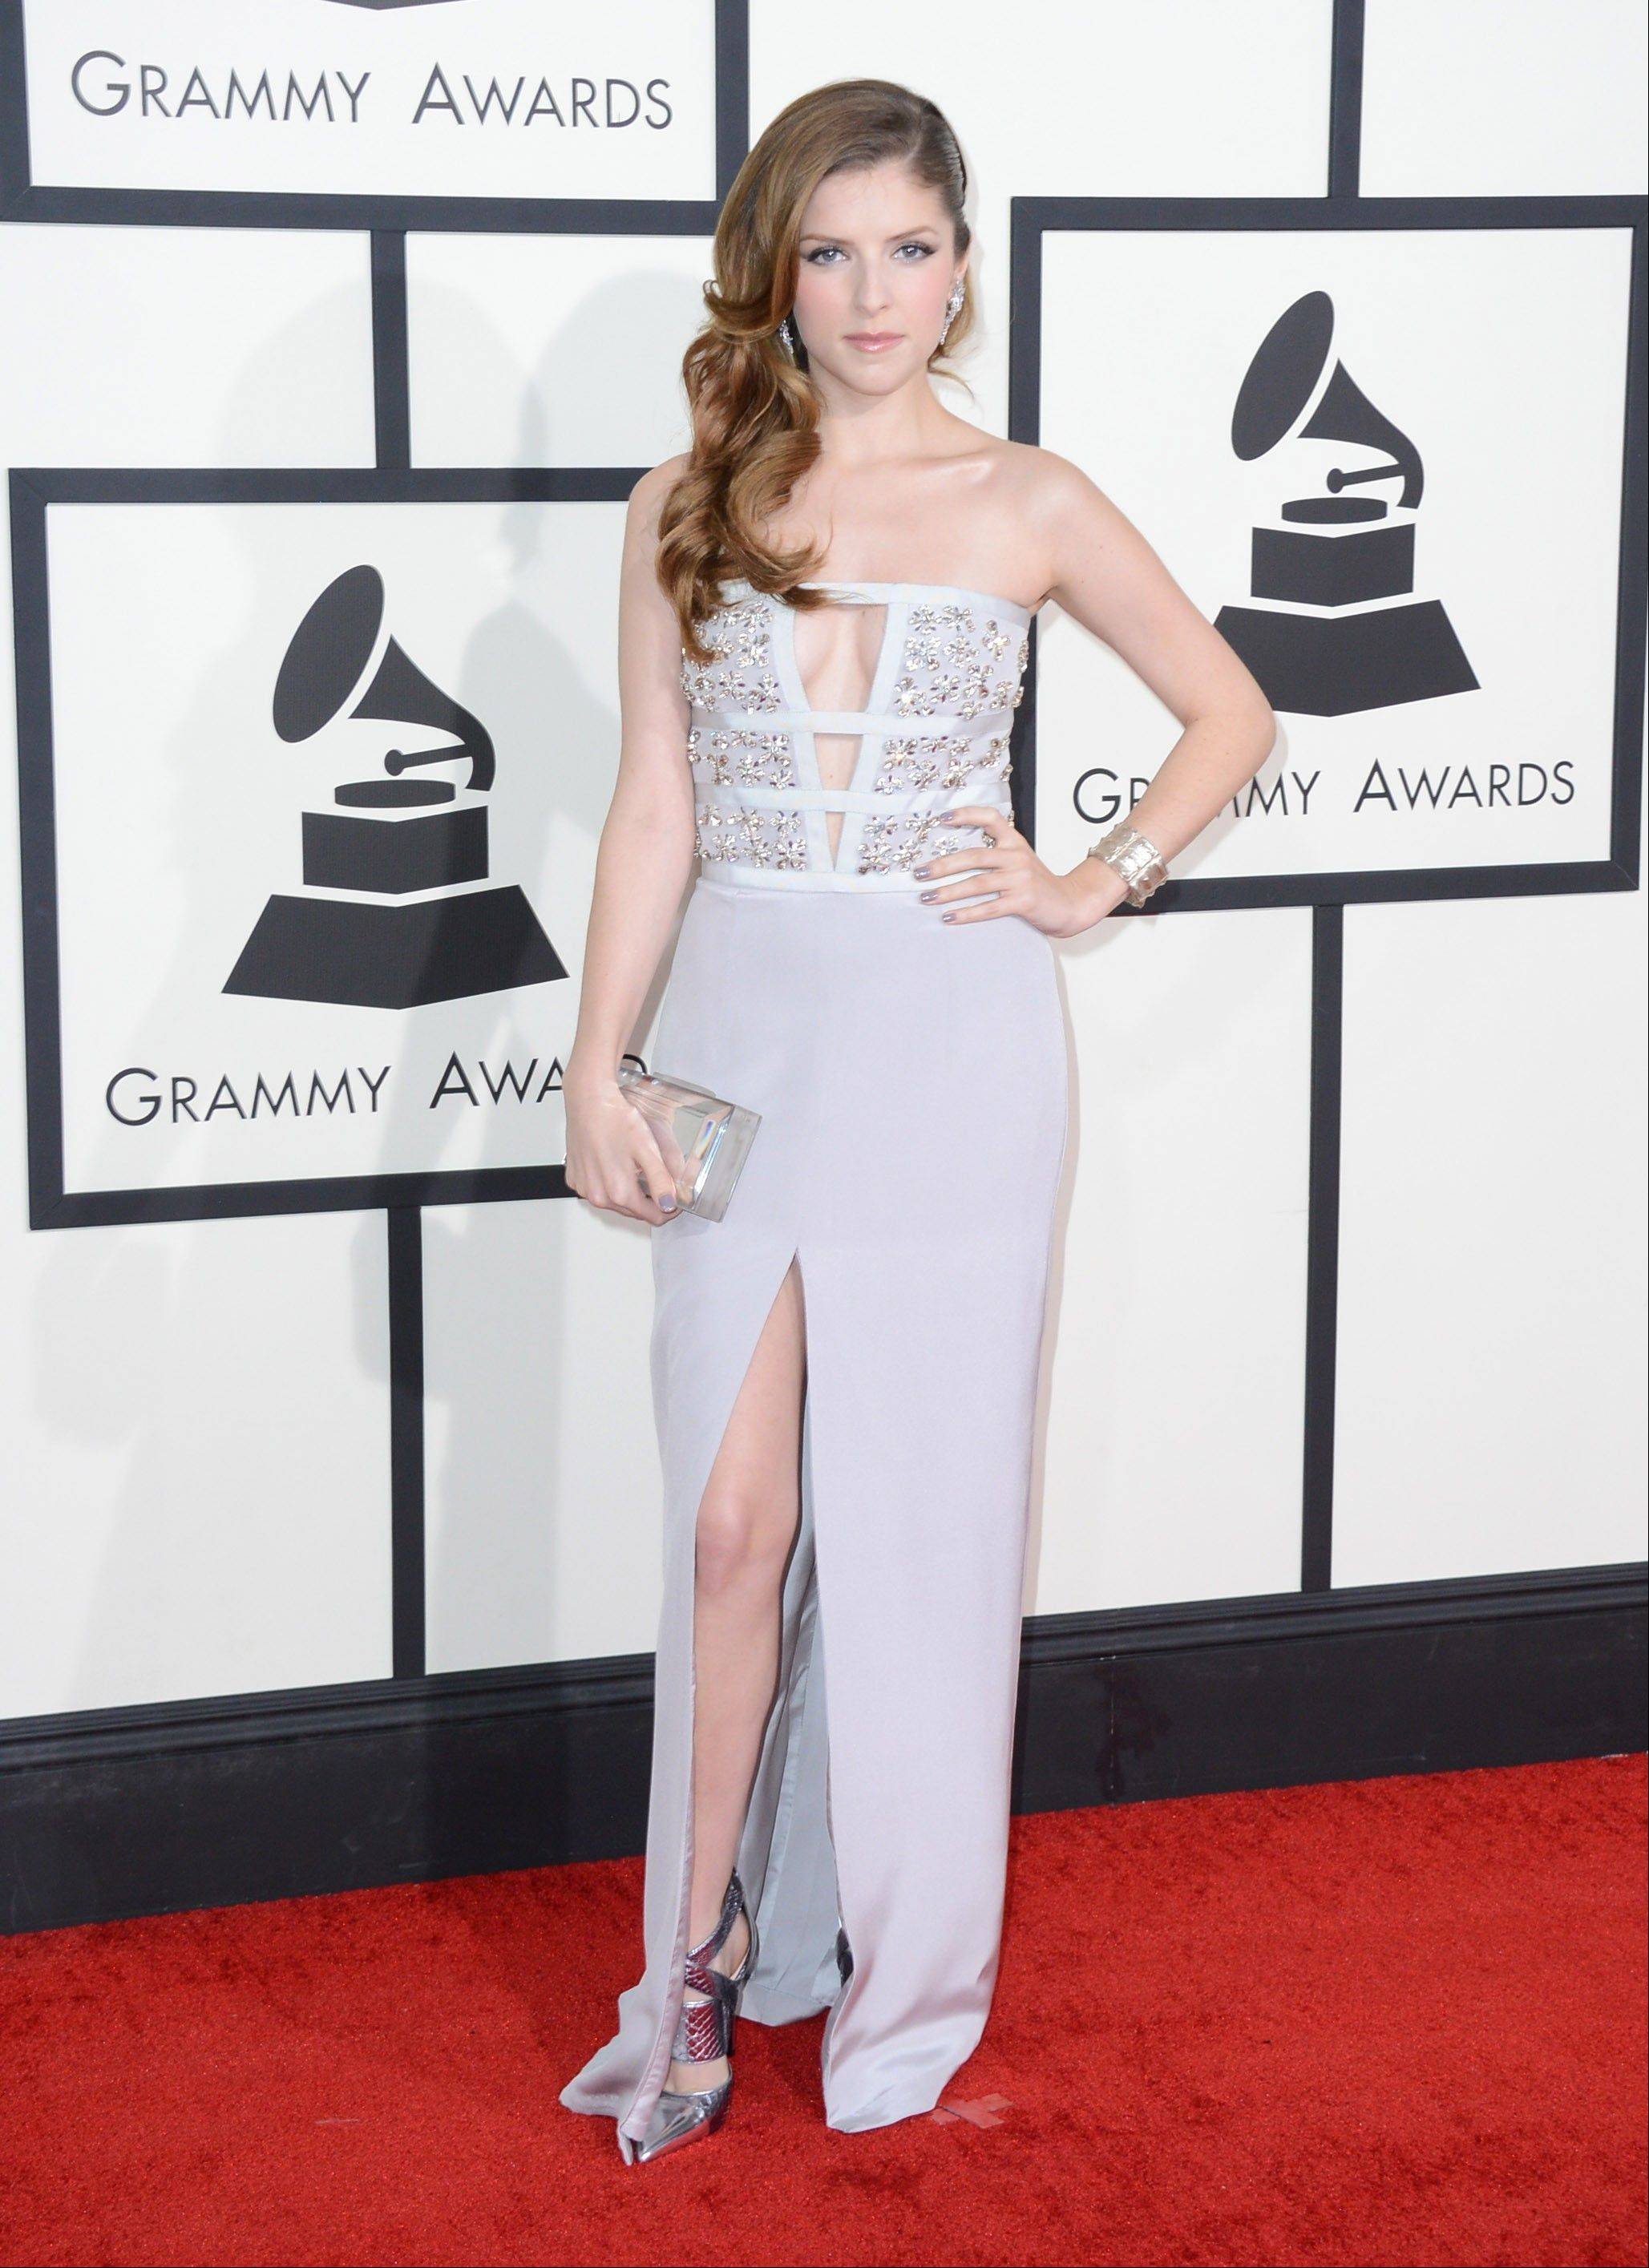 Actress Anna Kendrick arrives at the 56th annual Grammy Awards.